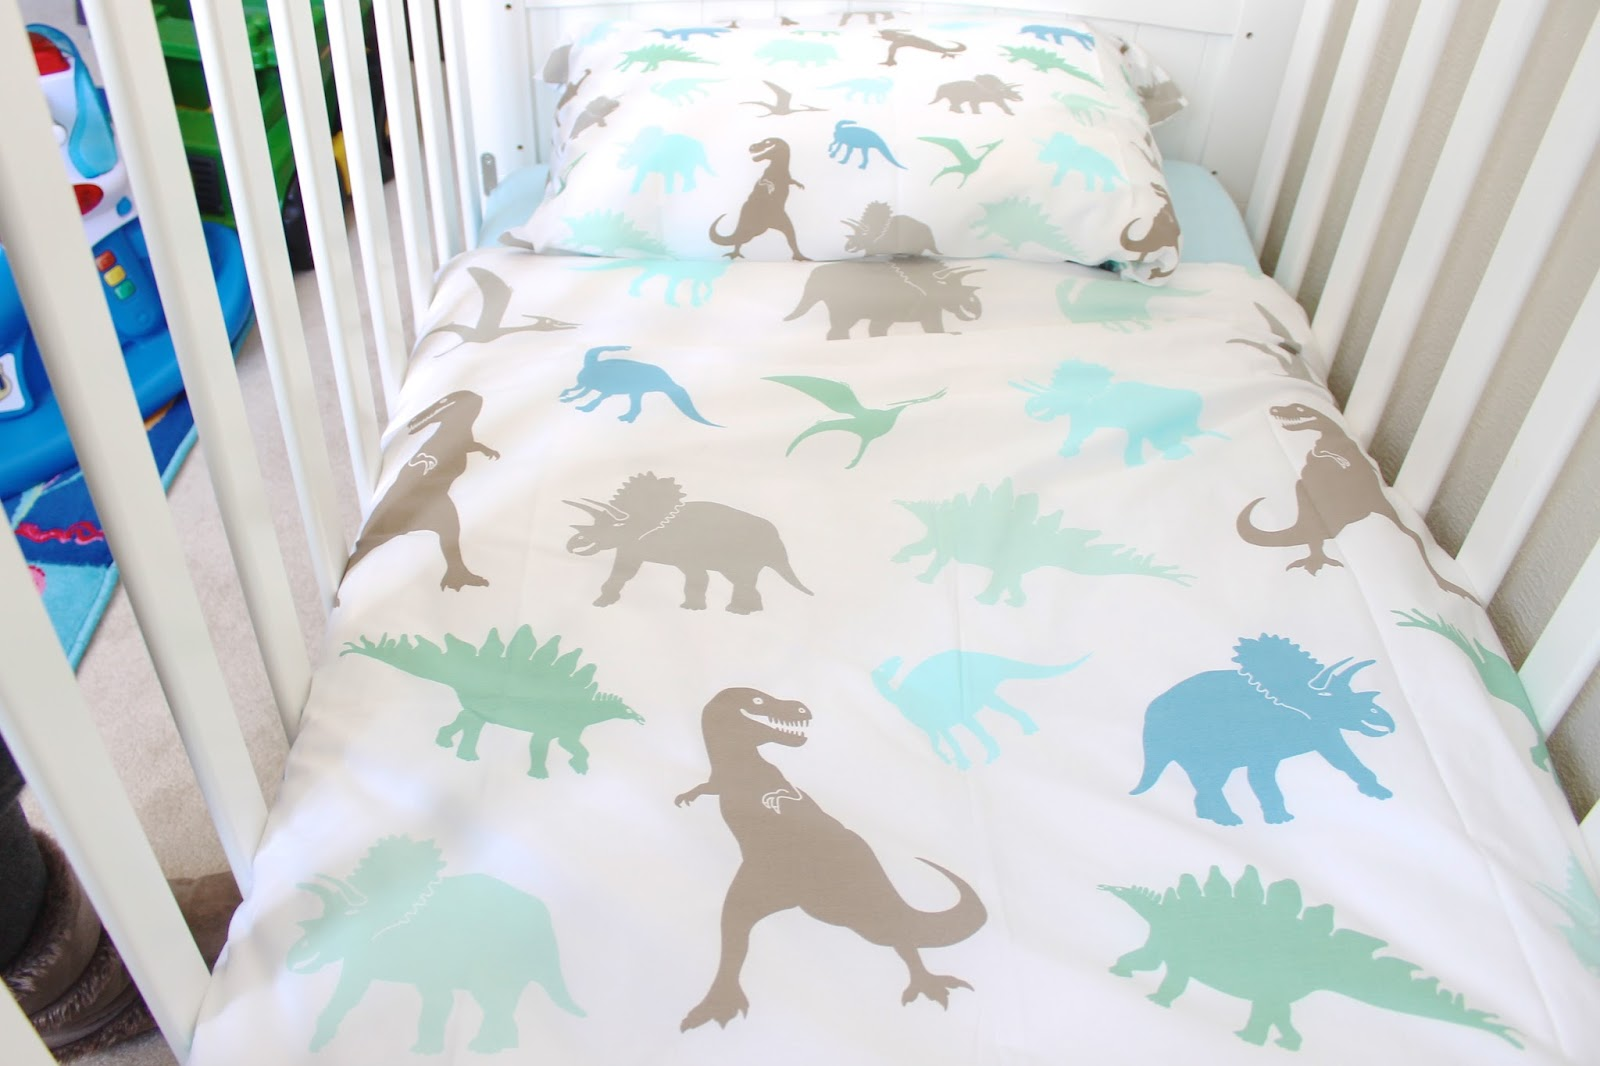 I Love How Well It Matches The A Blue Cot Sheet And Modern Yet Perfect For Little Boy Is Suits His Room Perfectly